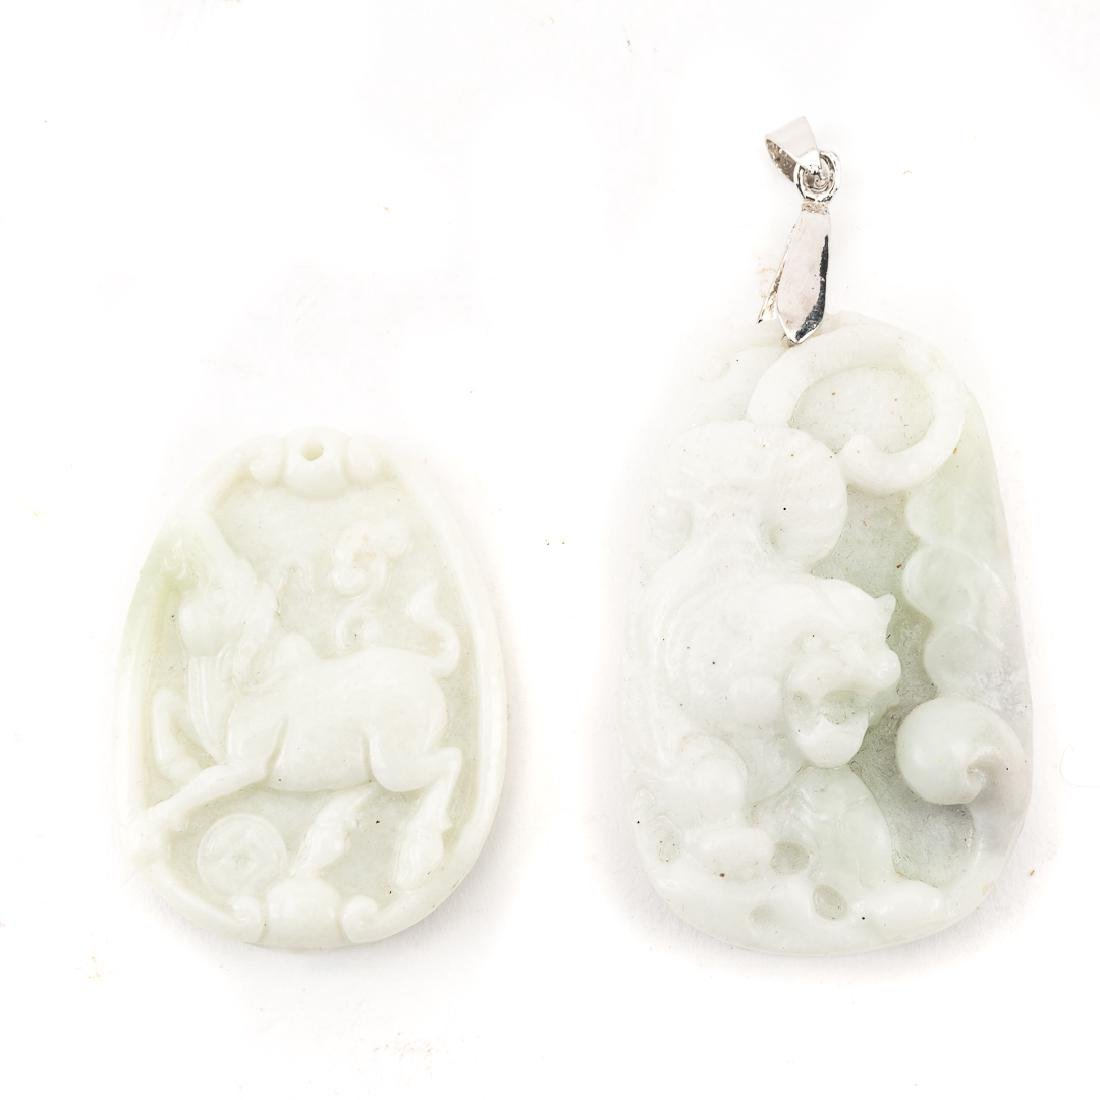 Six Chinese carved jade pendants - 2